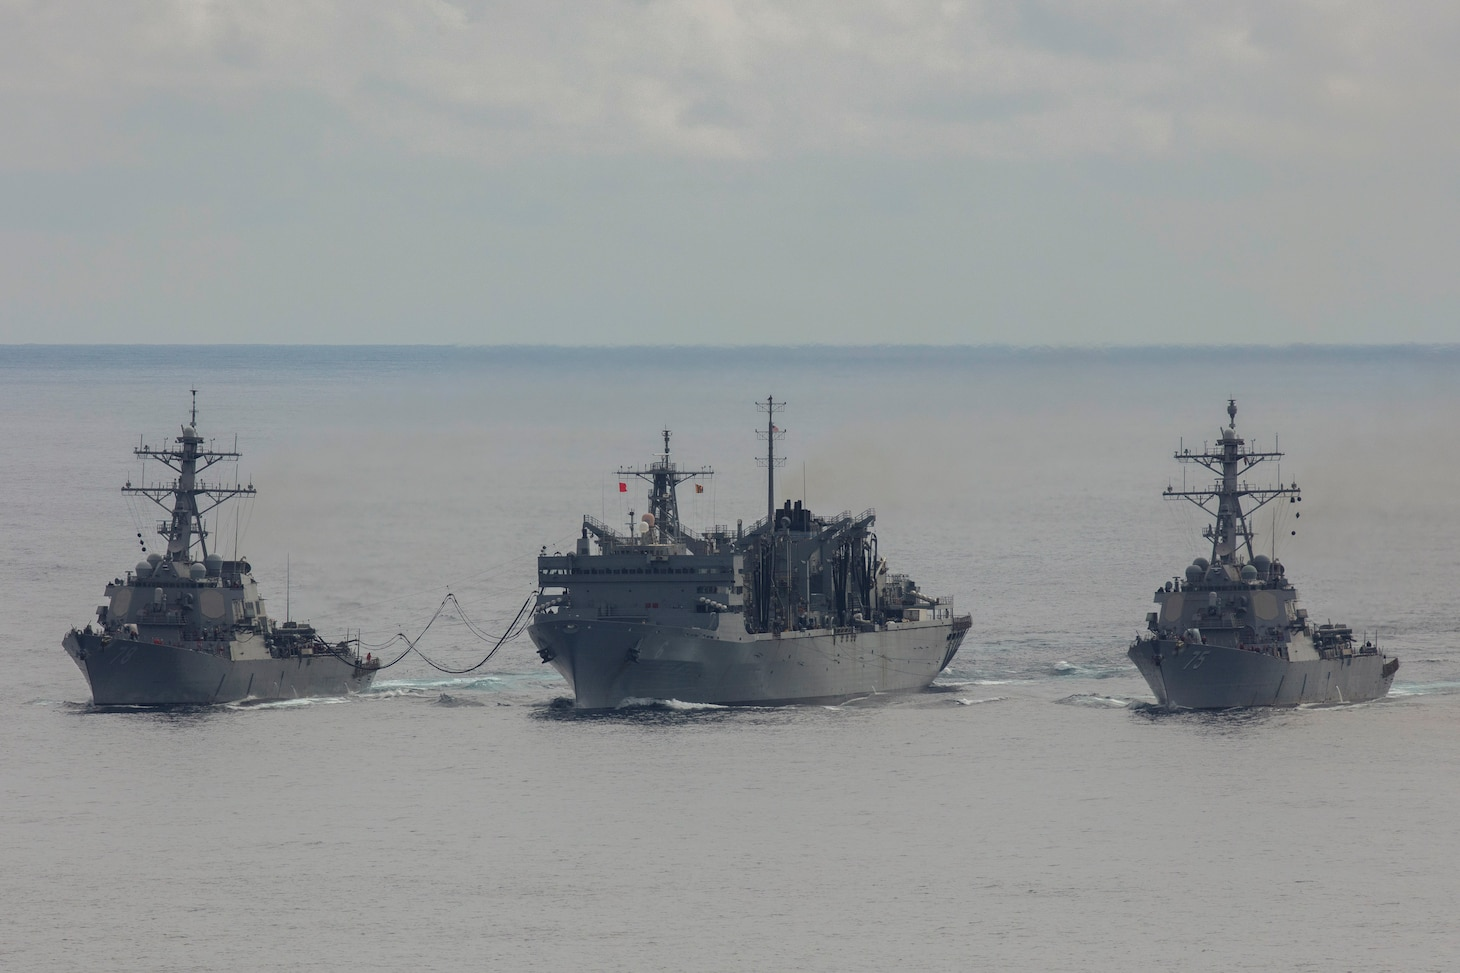 NORTH ATLANTIC (April 28, 2020) - The Arleigh Burke-class guided-missile destroyer USS Donald Cook (DDG 75) and USS Porter (DDG 78) conduct a connected replenishment with the USNS SUPPLY (T-AOE 6)  to receive fuel and stores, April 28, 2020. CNE-CAN/C6F, headquartered in Naples, Italy, oversees joint and naval operations, often in concert with Allied, joint, and interagency partners, in order to advance U.S. national interests and security and stability in Europe and Africa. (Photo by Royal Navy Photograher Dan Rosenbaum/Released)